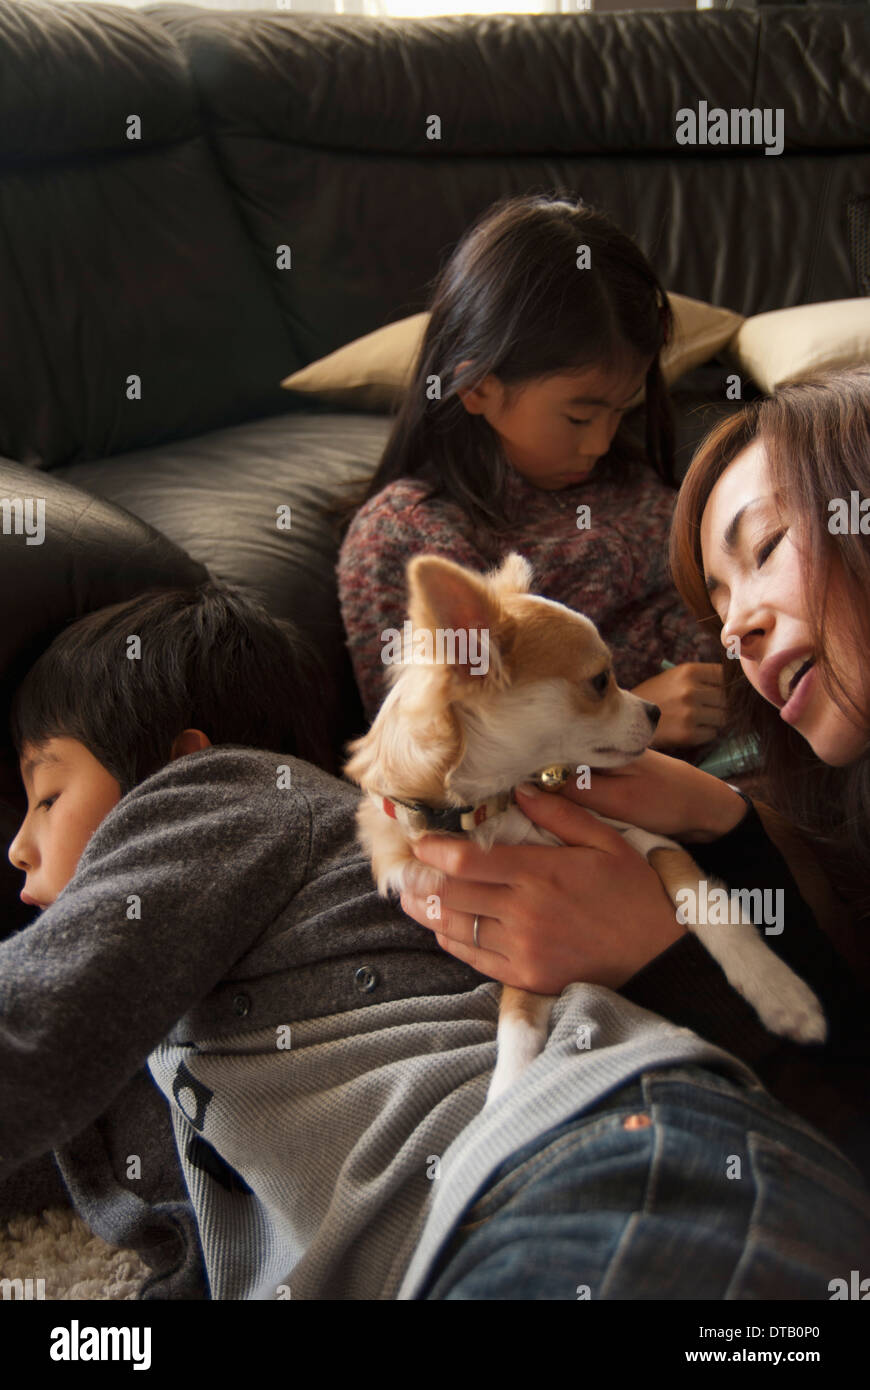 Family with dog in living room - Stock Image